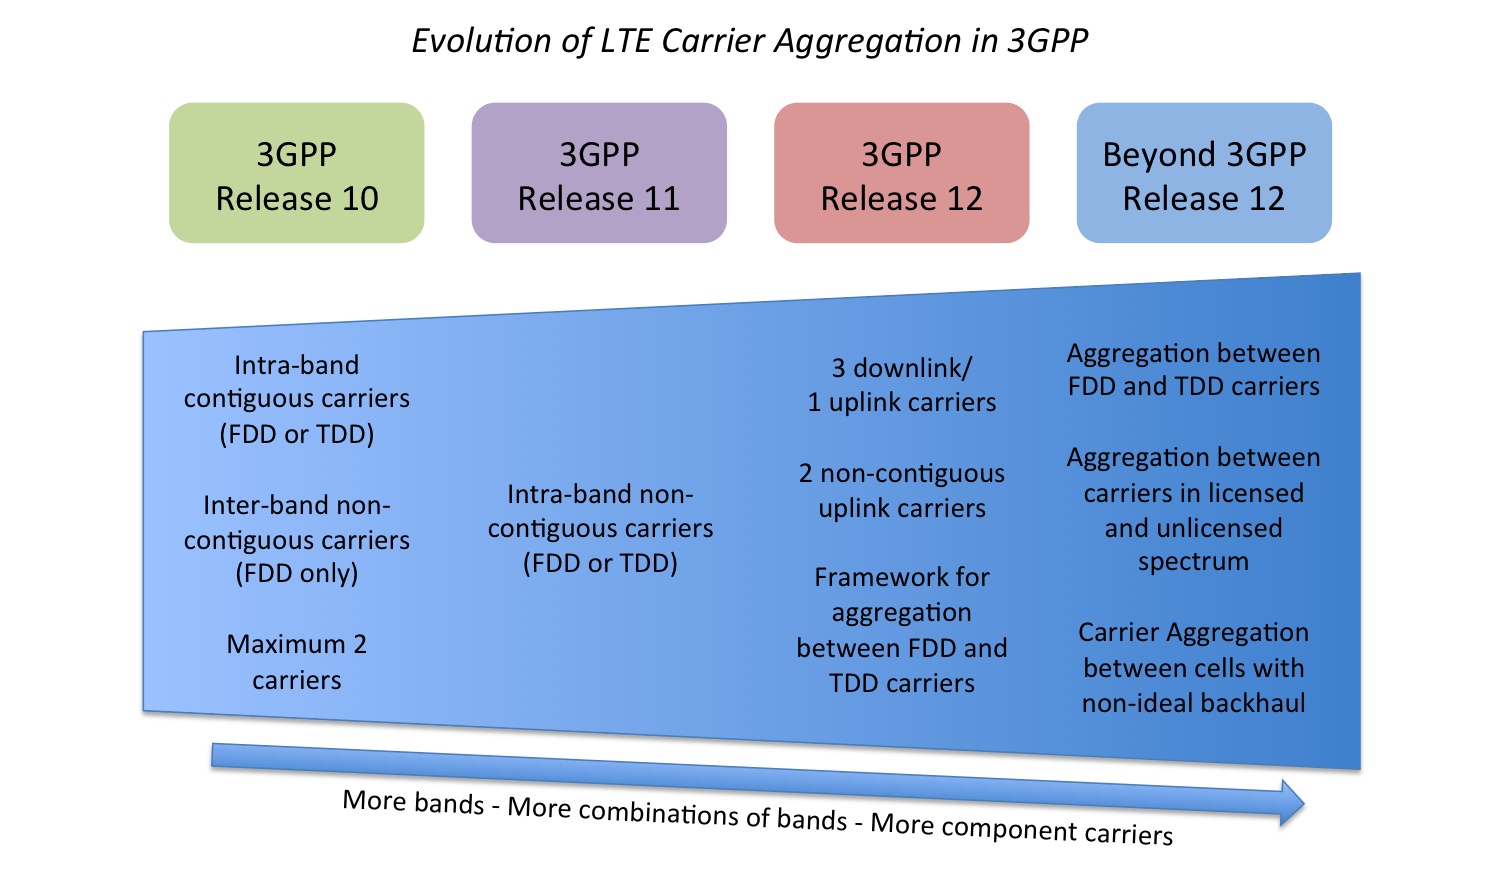 hight resolution of diagram identifying new lte advanced carrier aggregation features introduced in 3gpp release 10 onwards